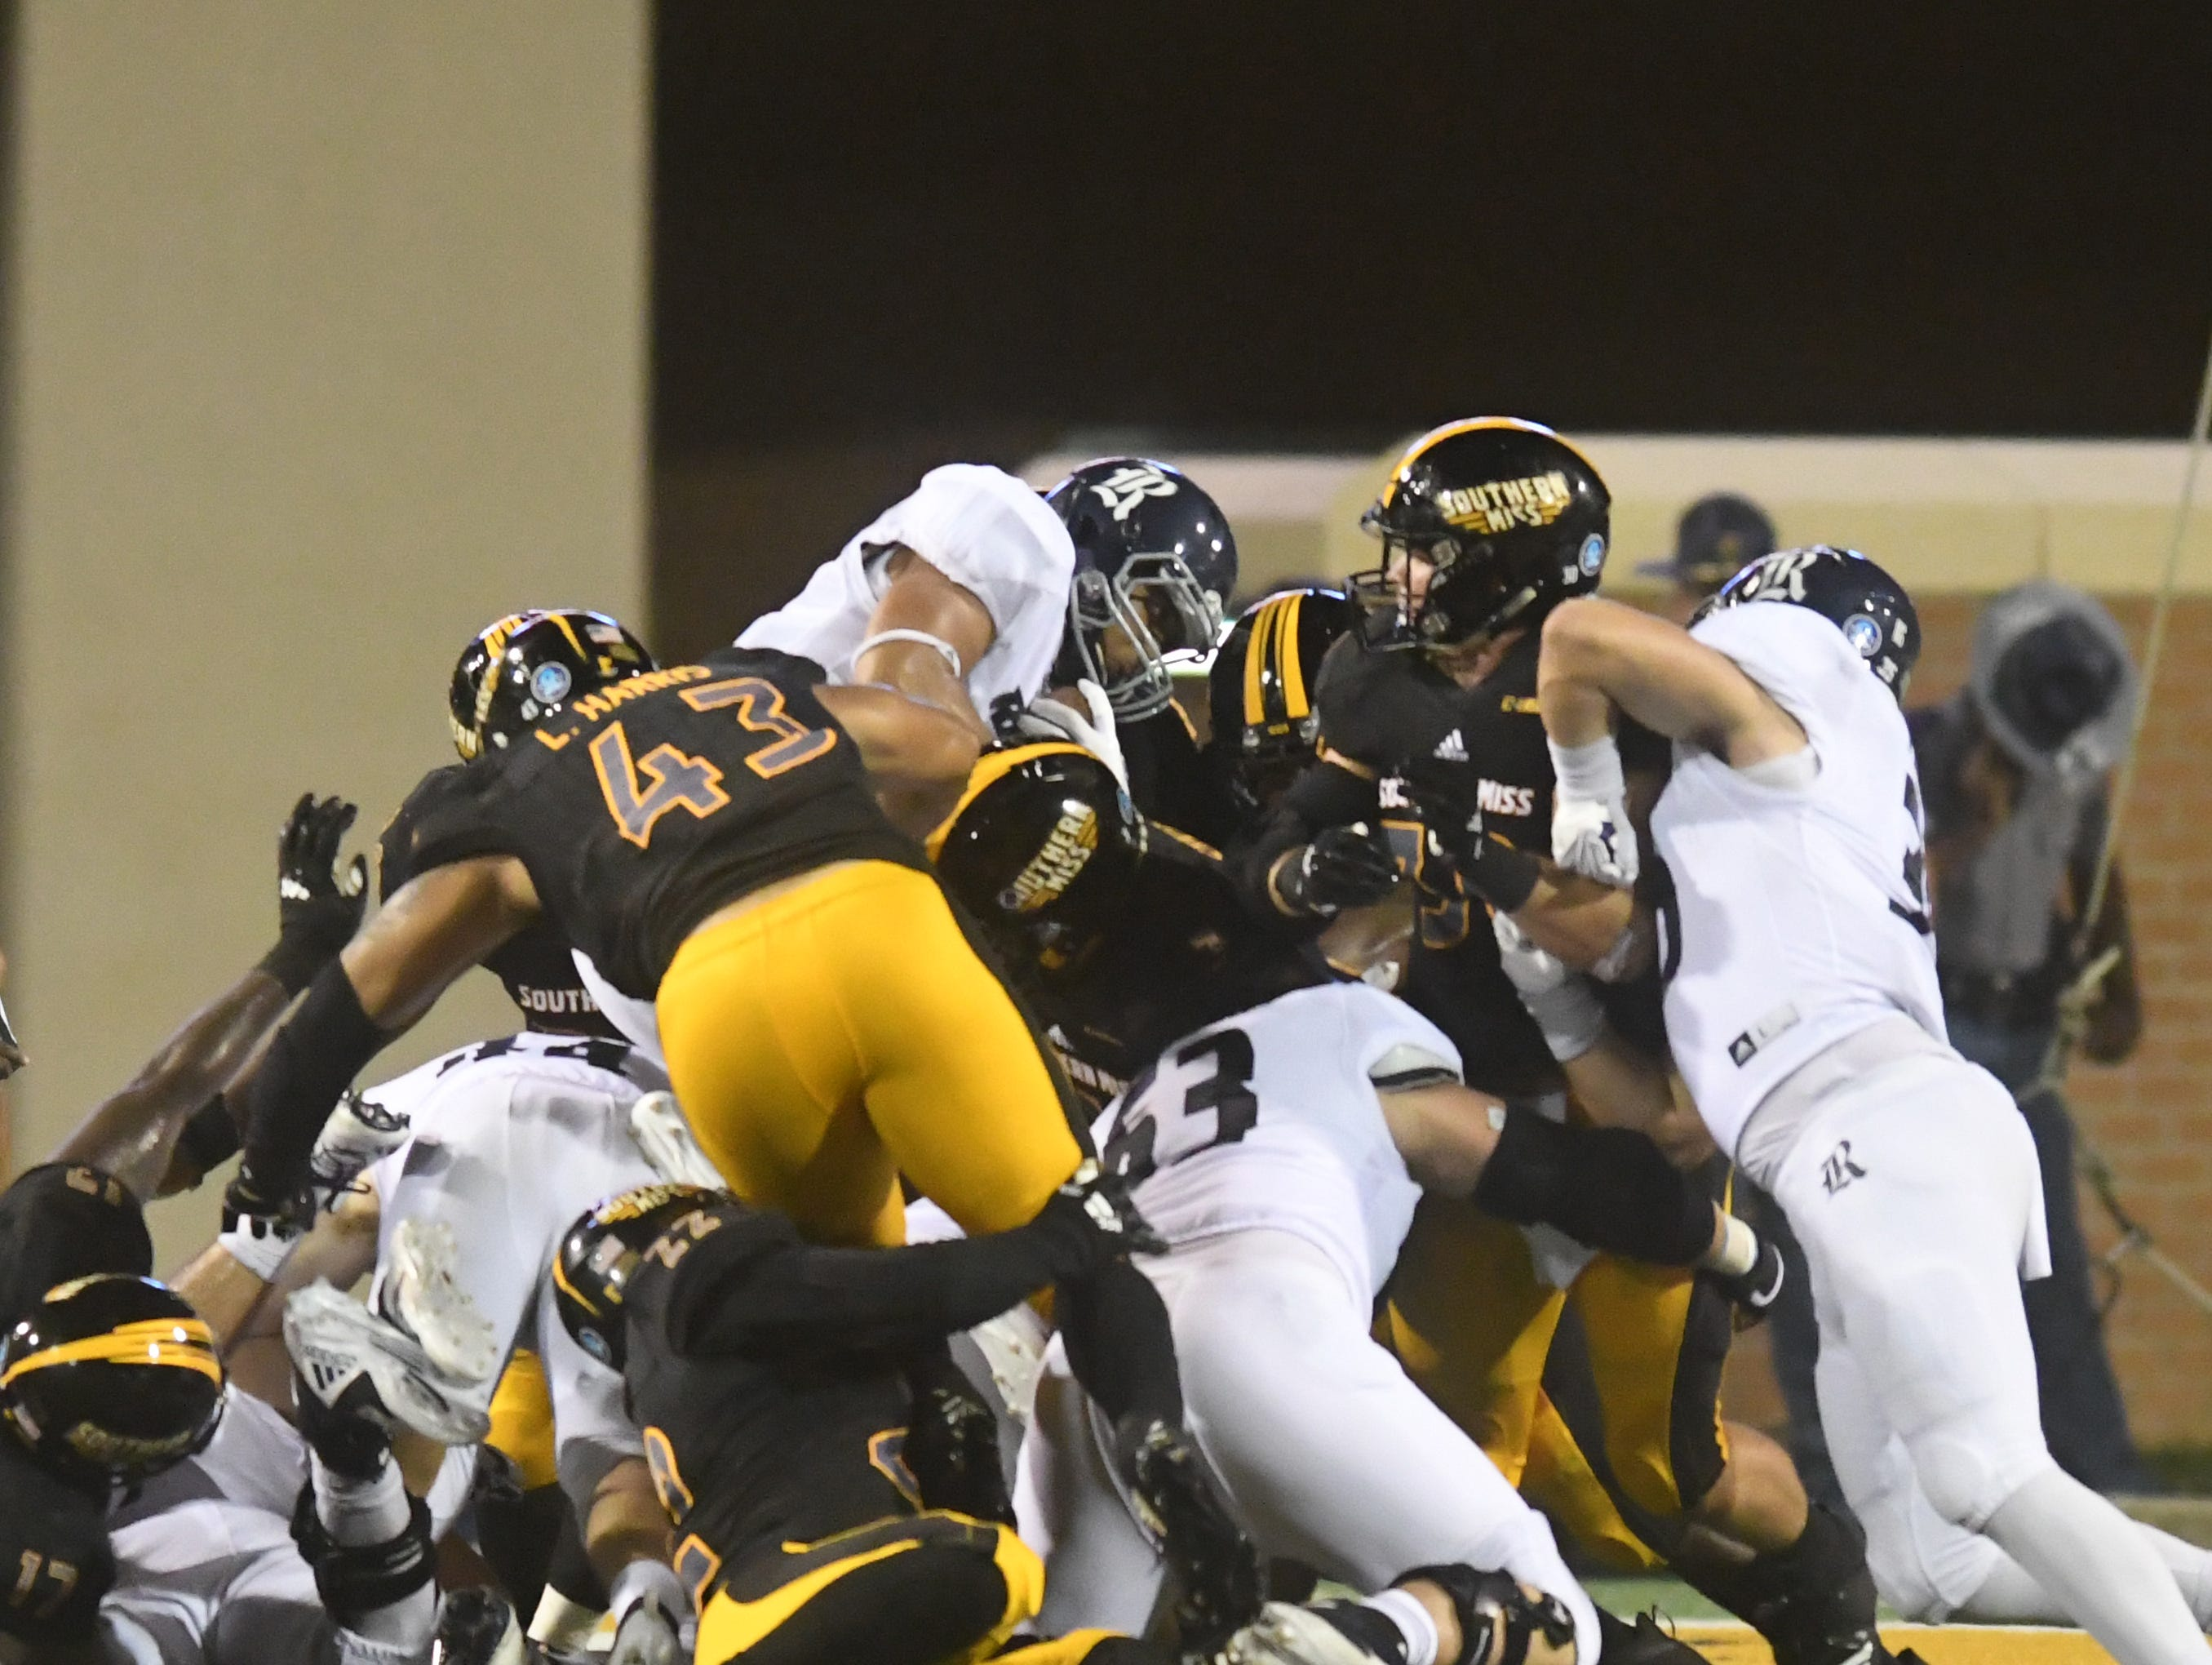 Southern Miss defense attempts to stop a play in a game against Rice at M.M. Roberts Stadium on Saturday, September 22, 2018.